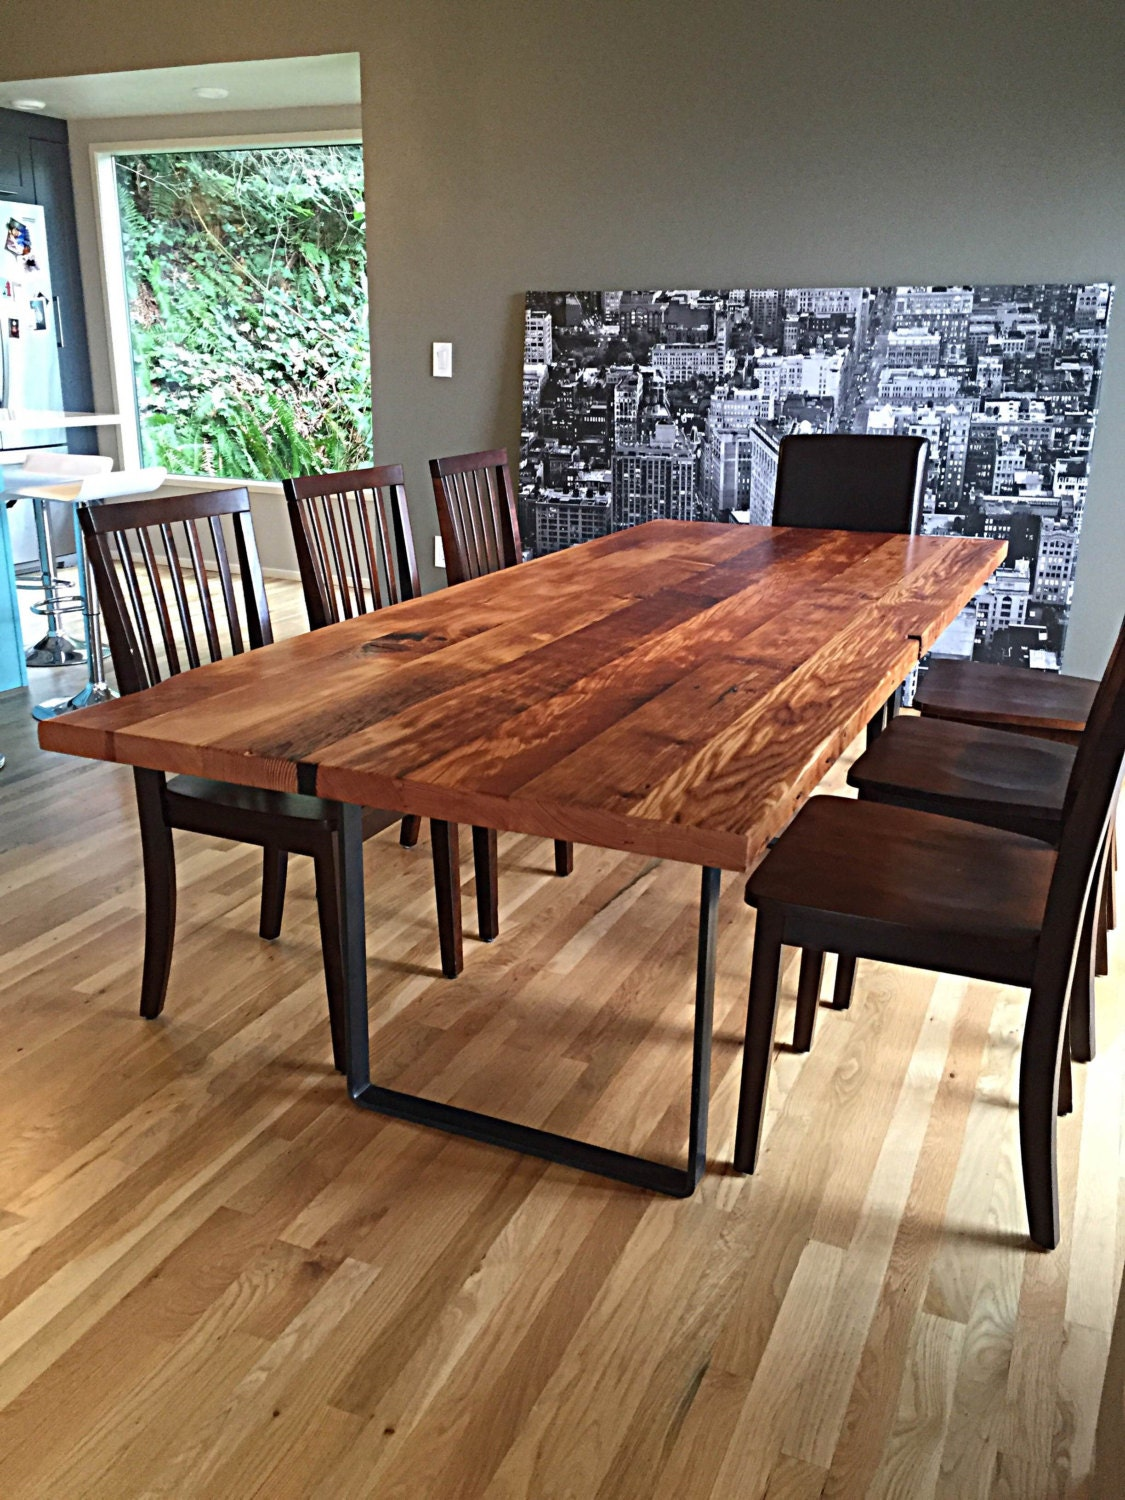 Reclaimed wood table for Reclaimed wood portland or